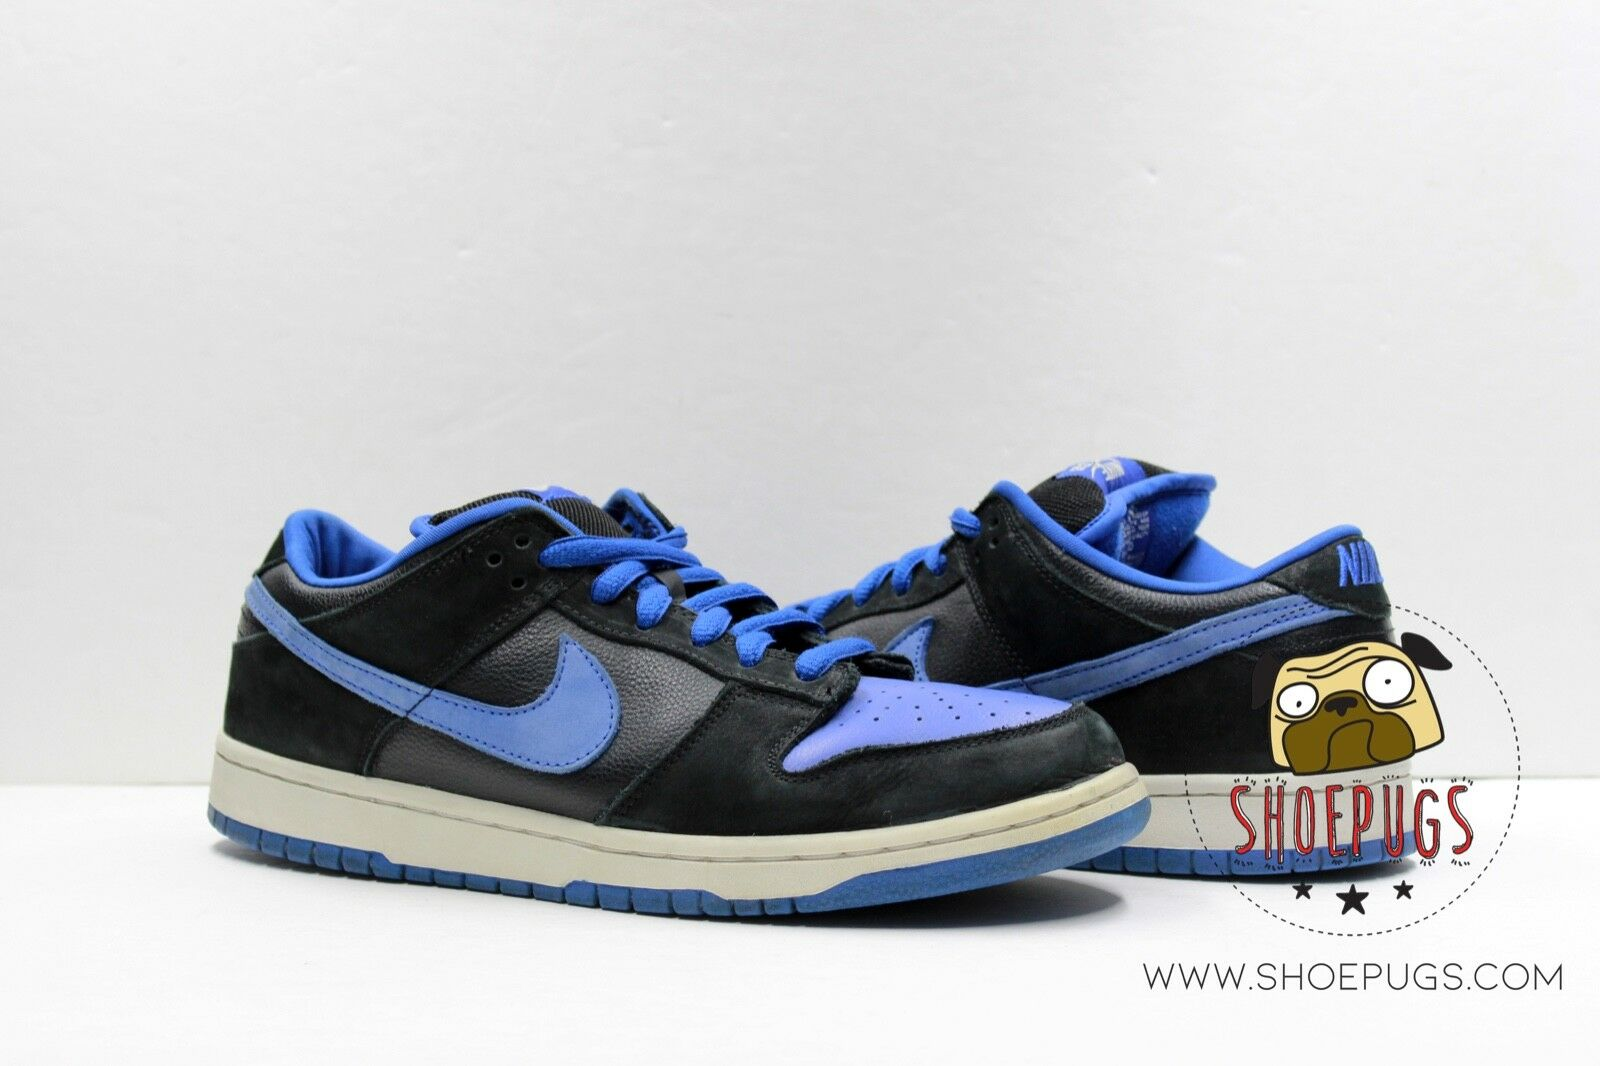 2005 Nike Dunk SB Low J Pack Royal sz 11 black bluee worn   TRUSTED SELLER